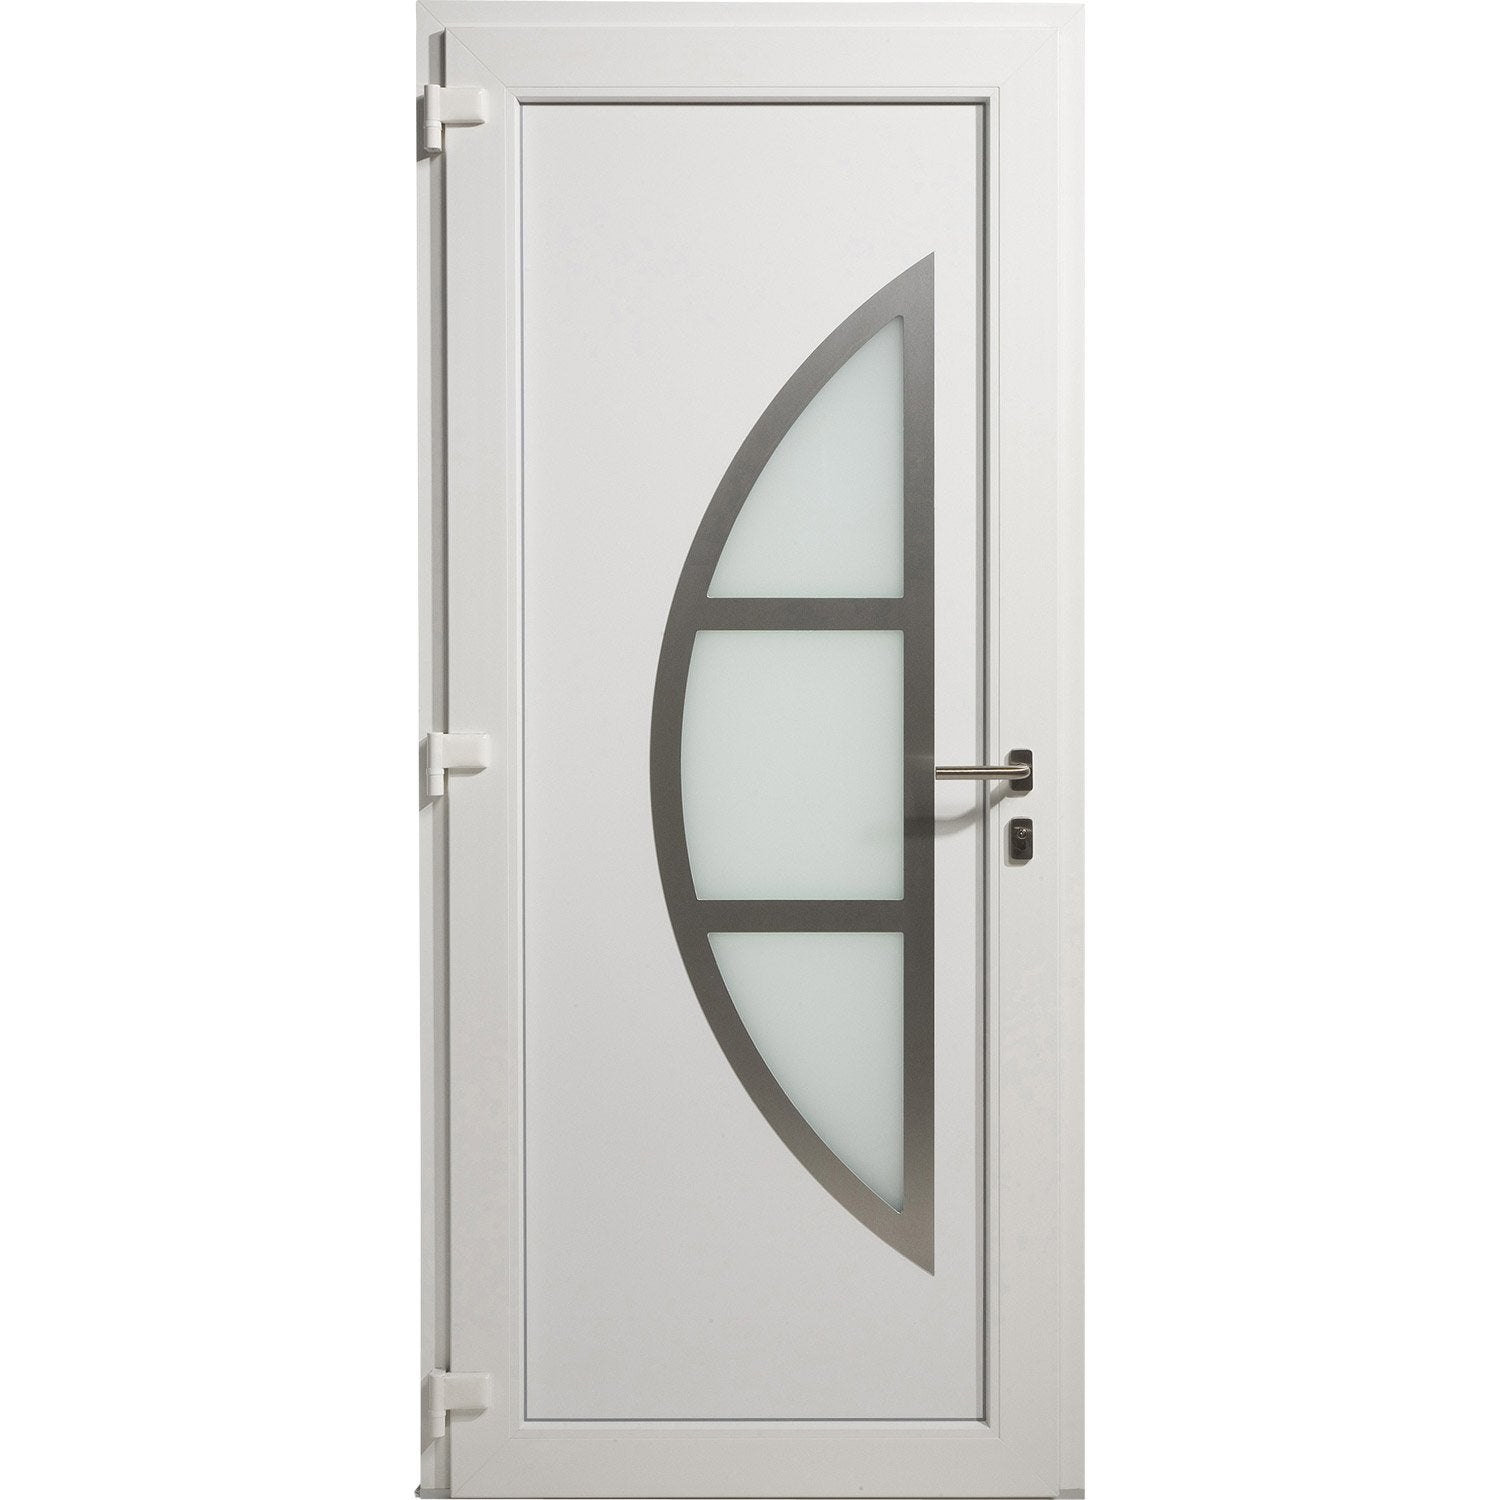 Porte en pvc leroy merlin 100 images 199 best leroy merl n images on merlin home and - Canvas pvc leroy merlin ...